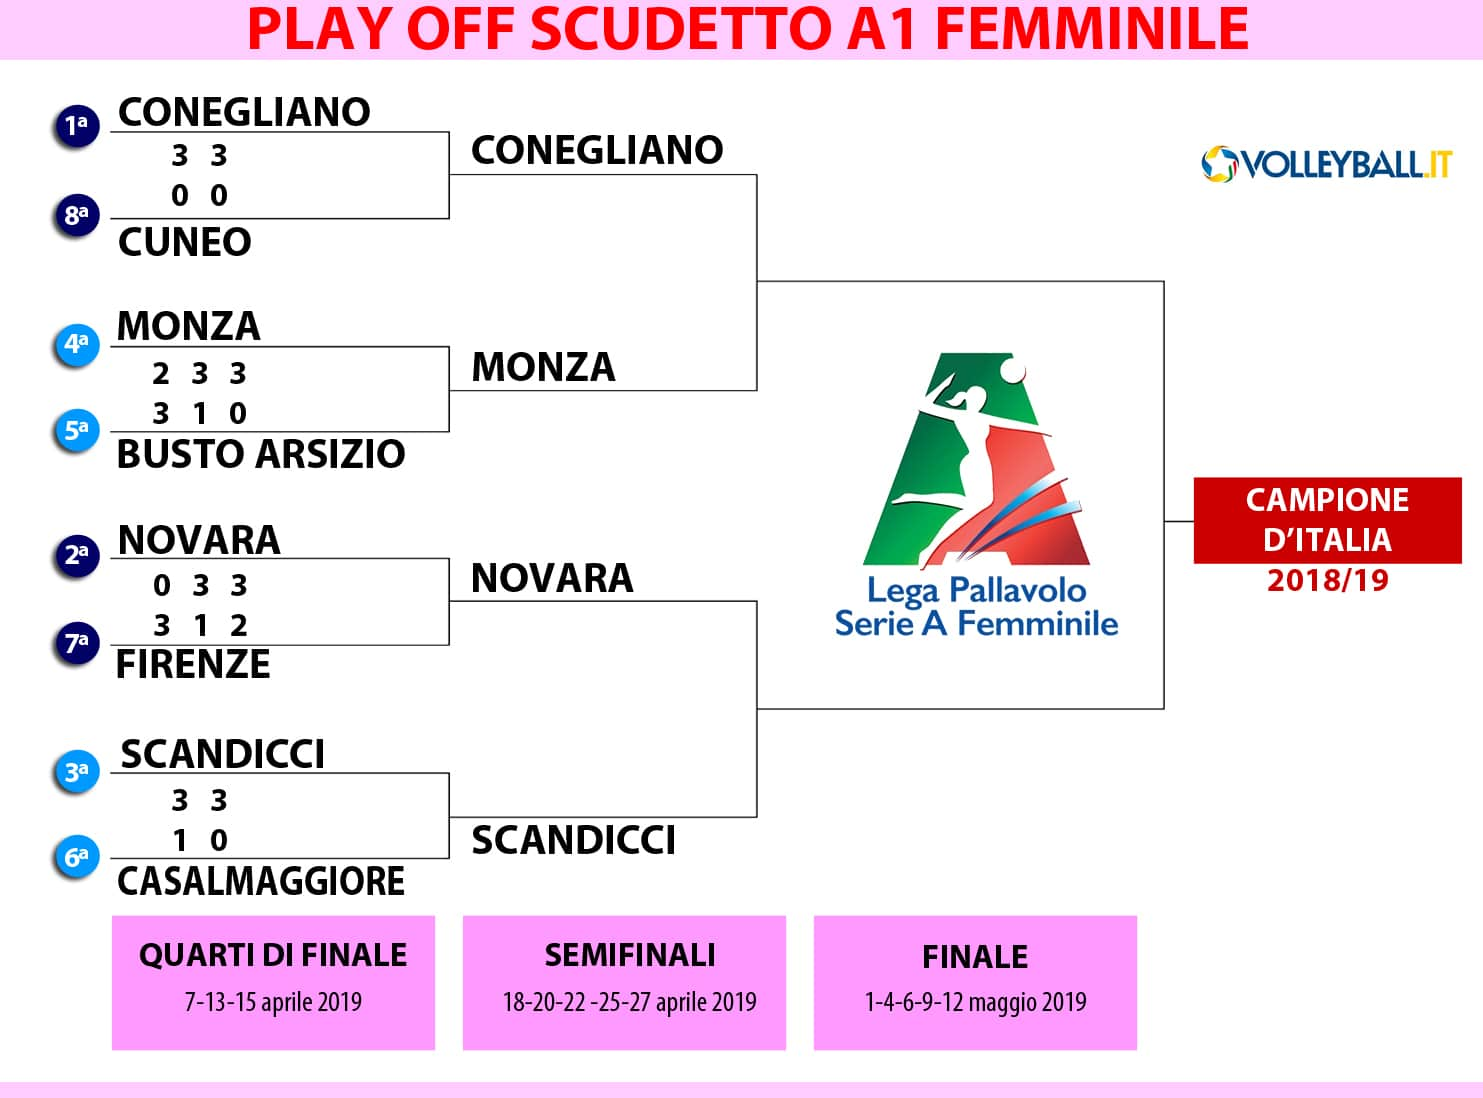 Calendario Play Off.Play Off A1 F Novara E Monza In Semifinale Il Calendario